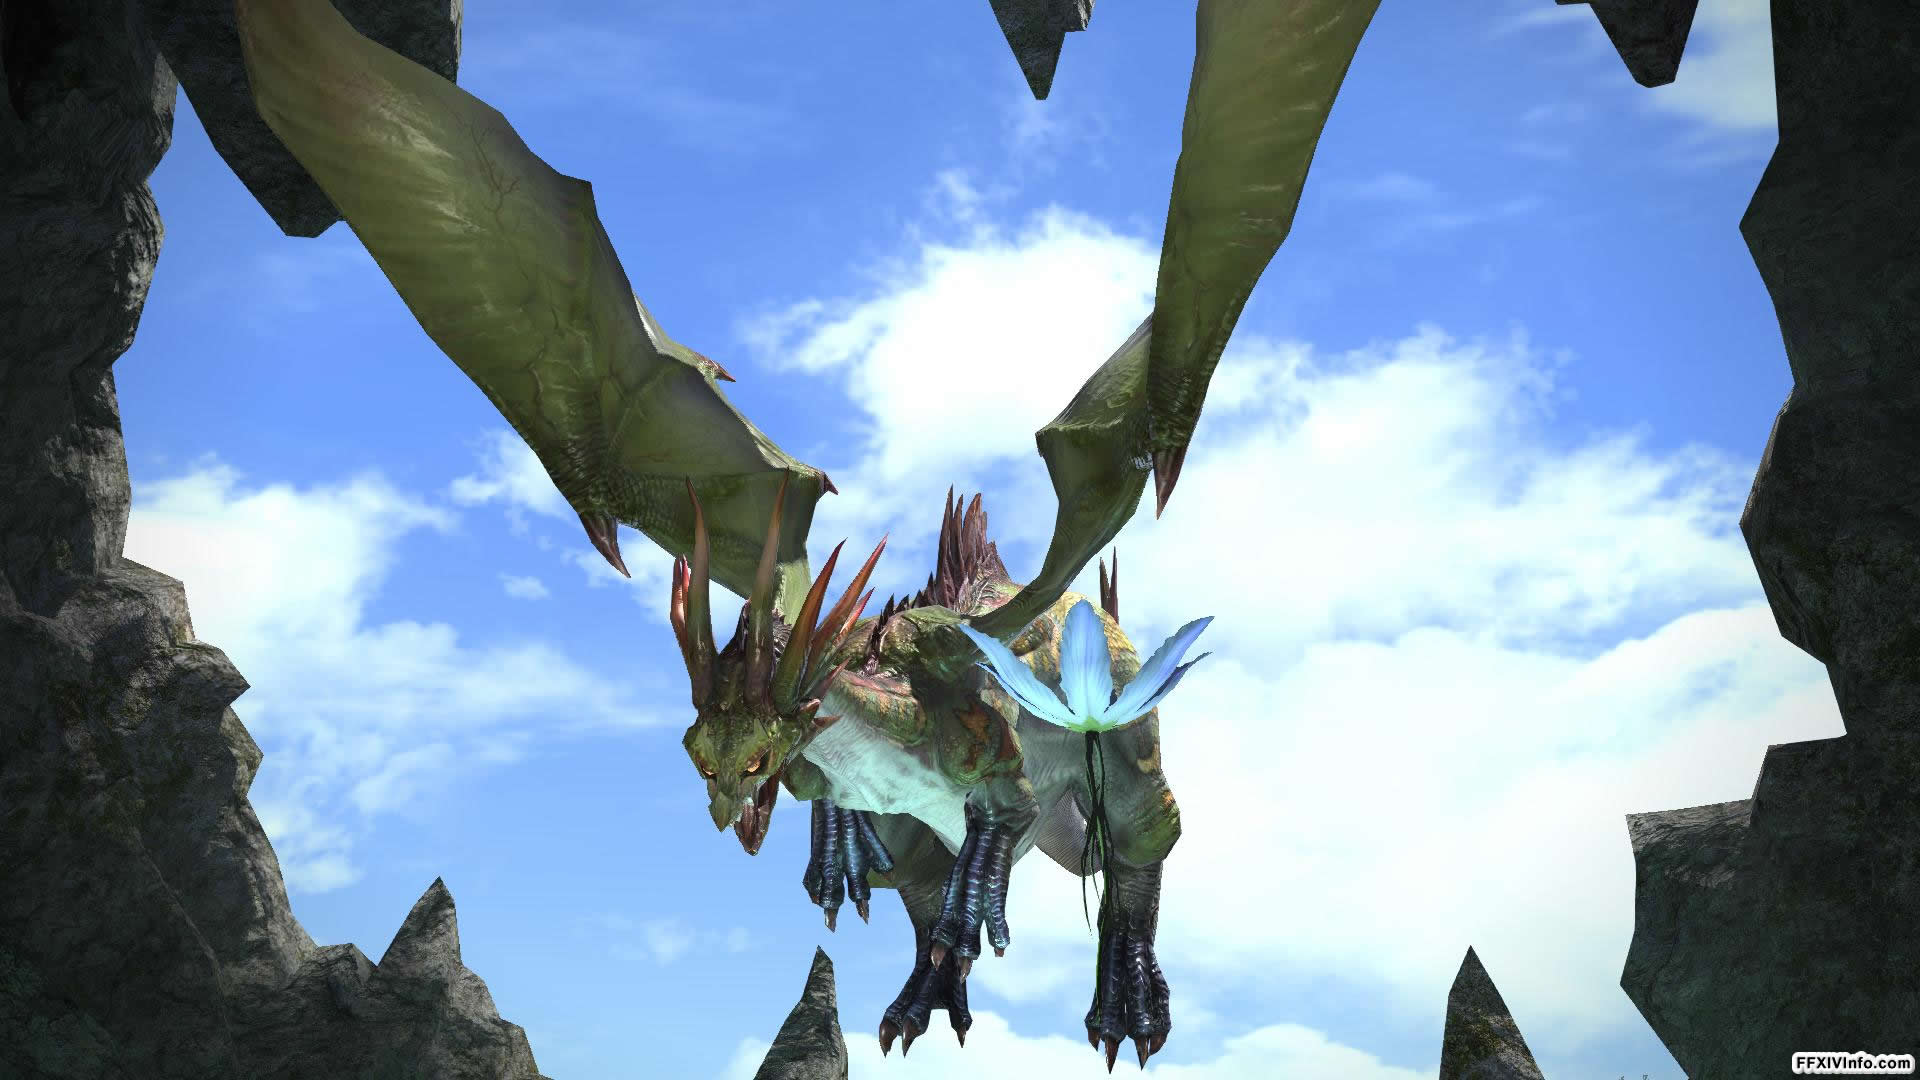 Buy safe FFXIV power leveling to level up your character in FFXIV ARR